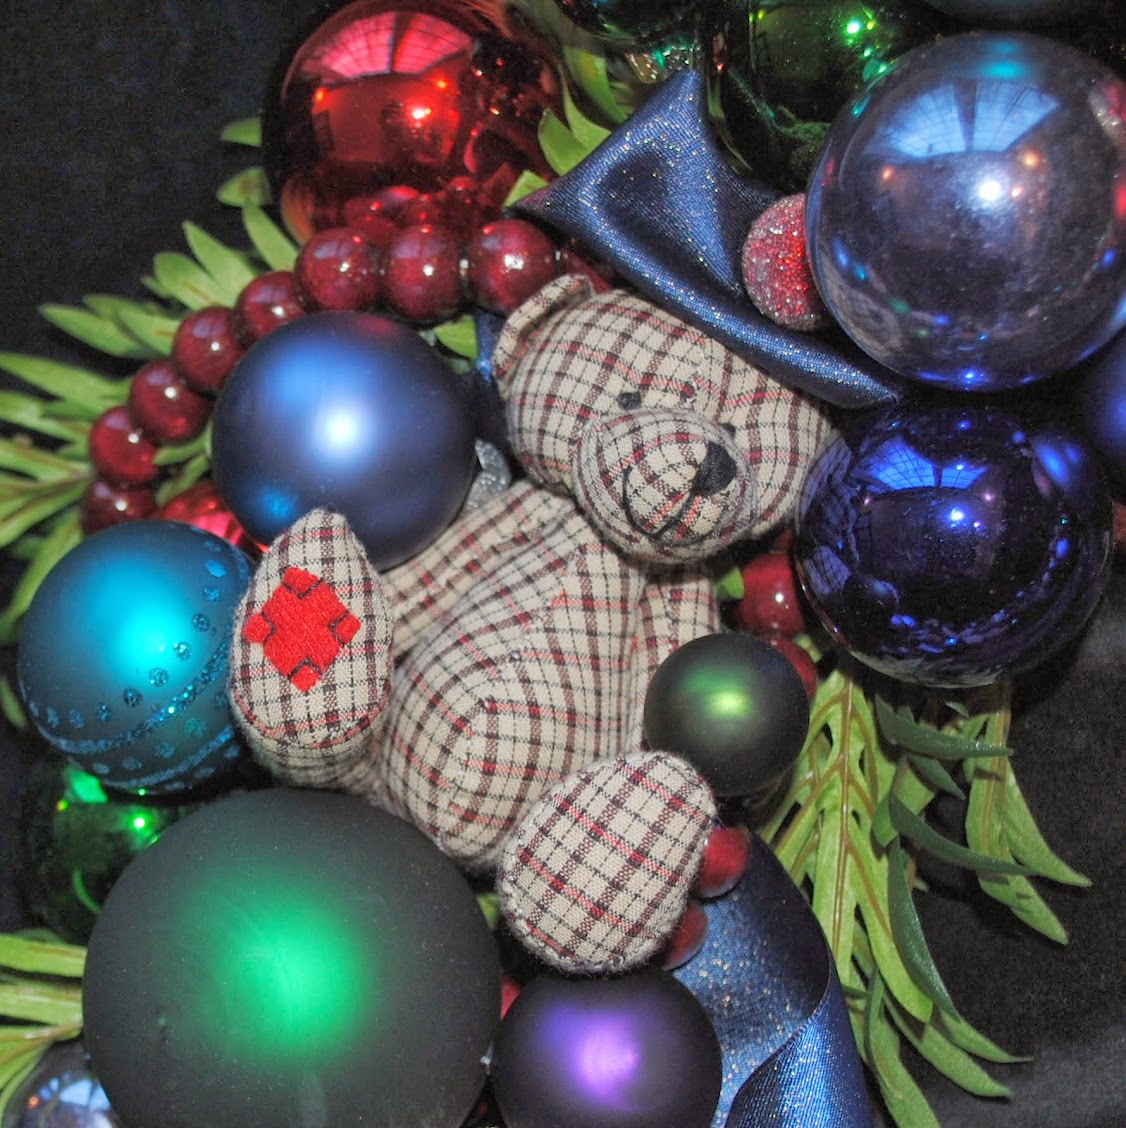 OWR8028 Homespun Teddy Bears Christmas Ornament Wreath